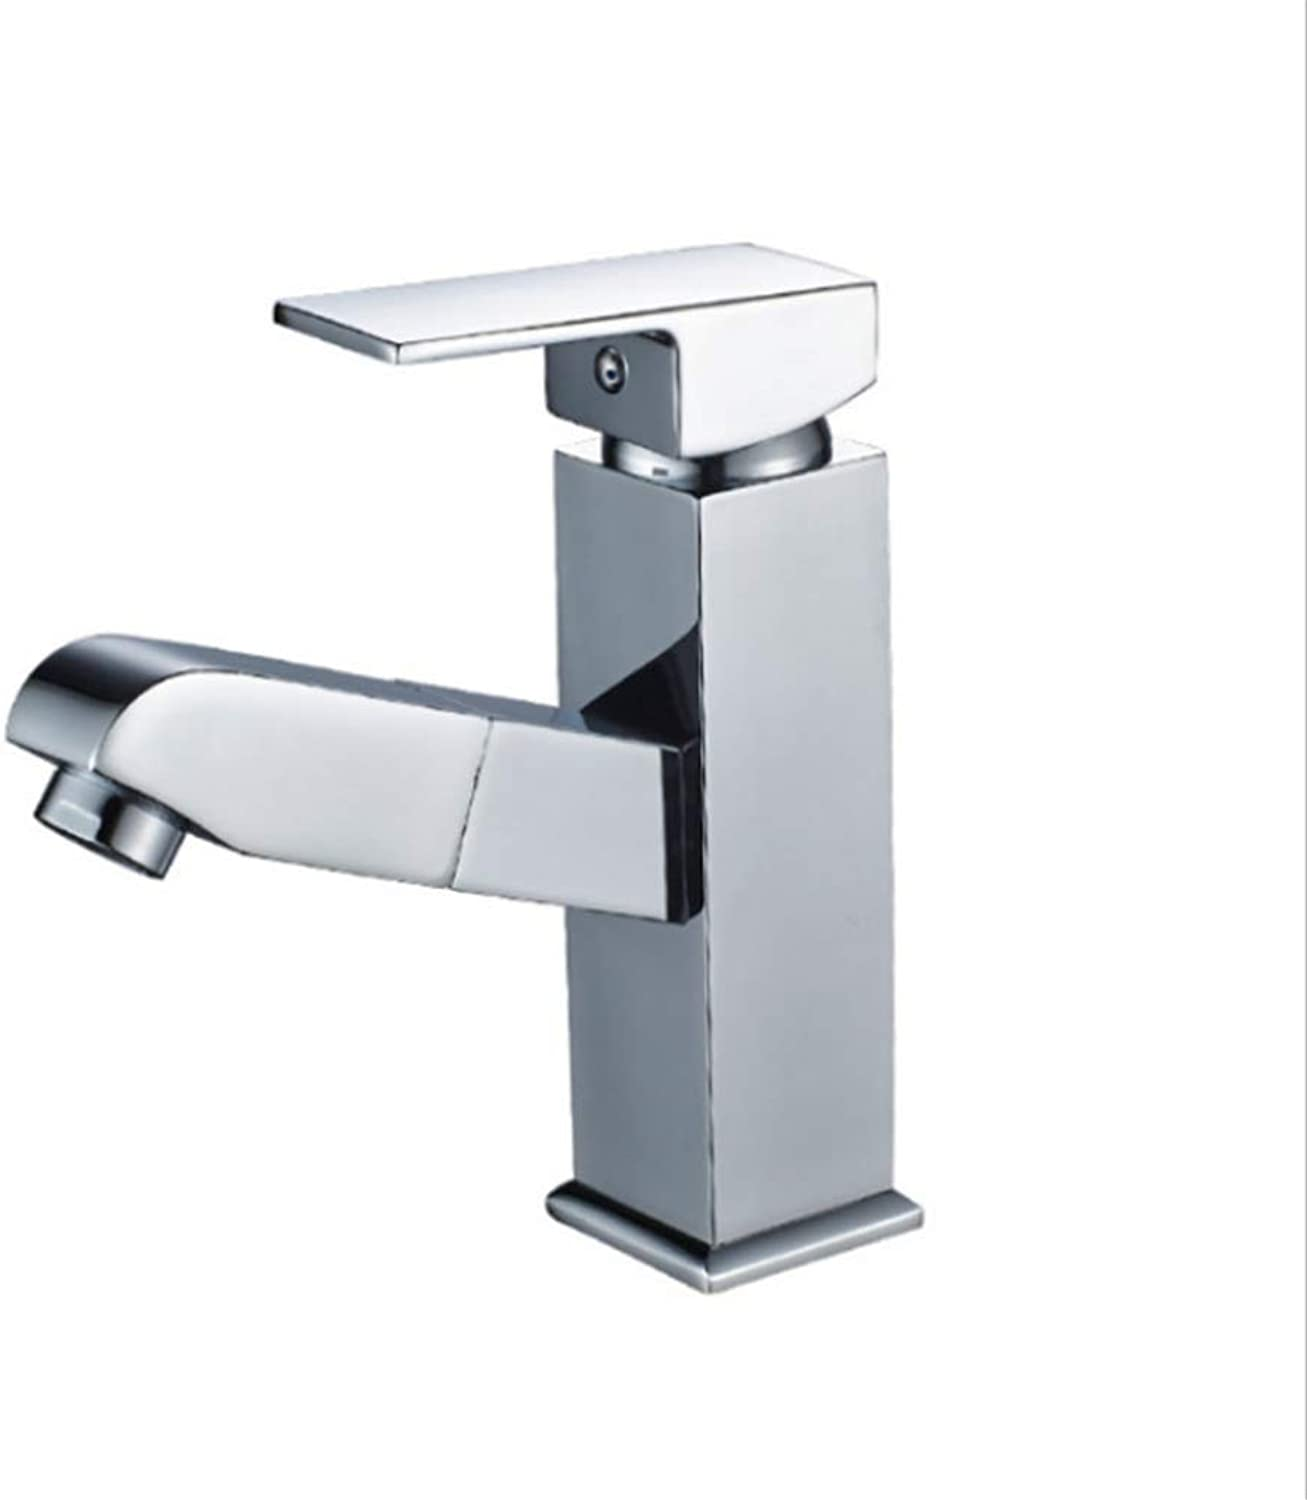 Faucet Mone Spout Basintongtai Lower Basin Pull Tap Cold and Hot Washbasin Tap Cube